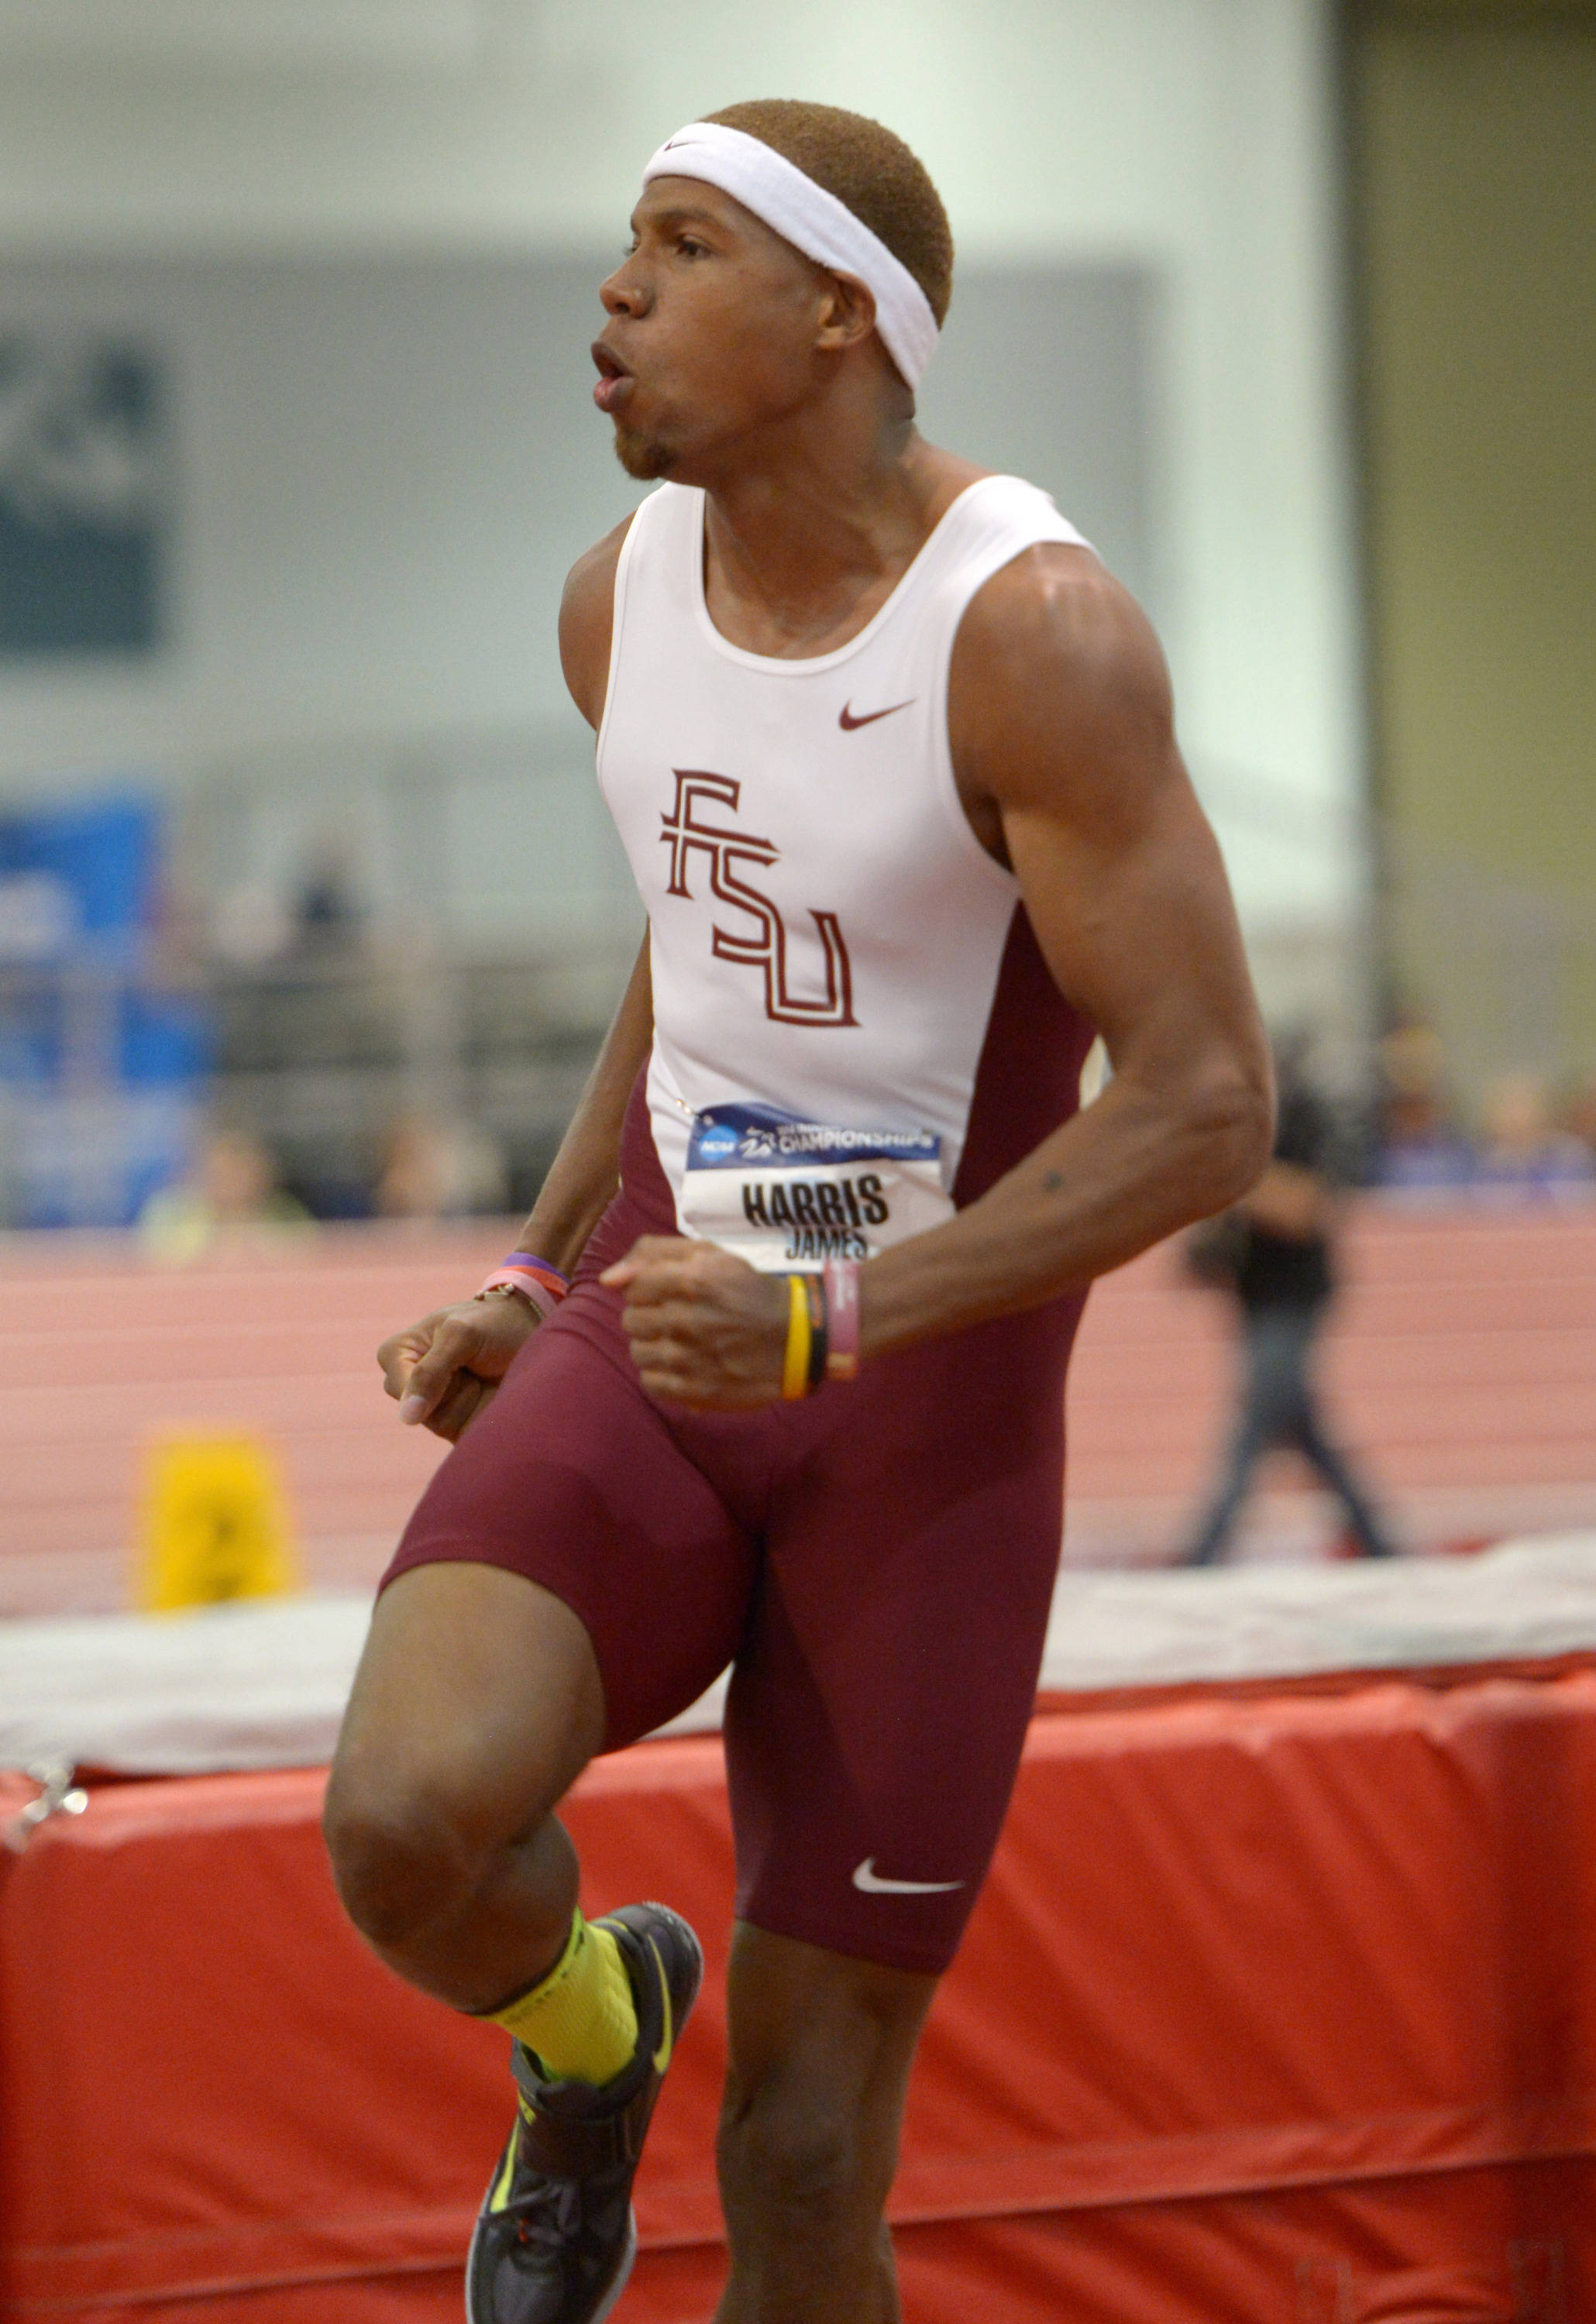 Mar 14, 2014; Albuquerque, NM, USA; James Harris of Florida State celebrates after a clearance of 7-7 1/4 (2.32m) to win the high jump in the 2014 NCAA Indoor Championships at Albuquerque Convention Center. Mandatory Credit: Kirby Lee-USA TODAY Sports